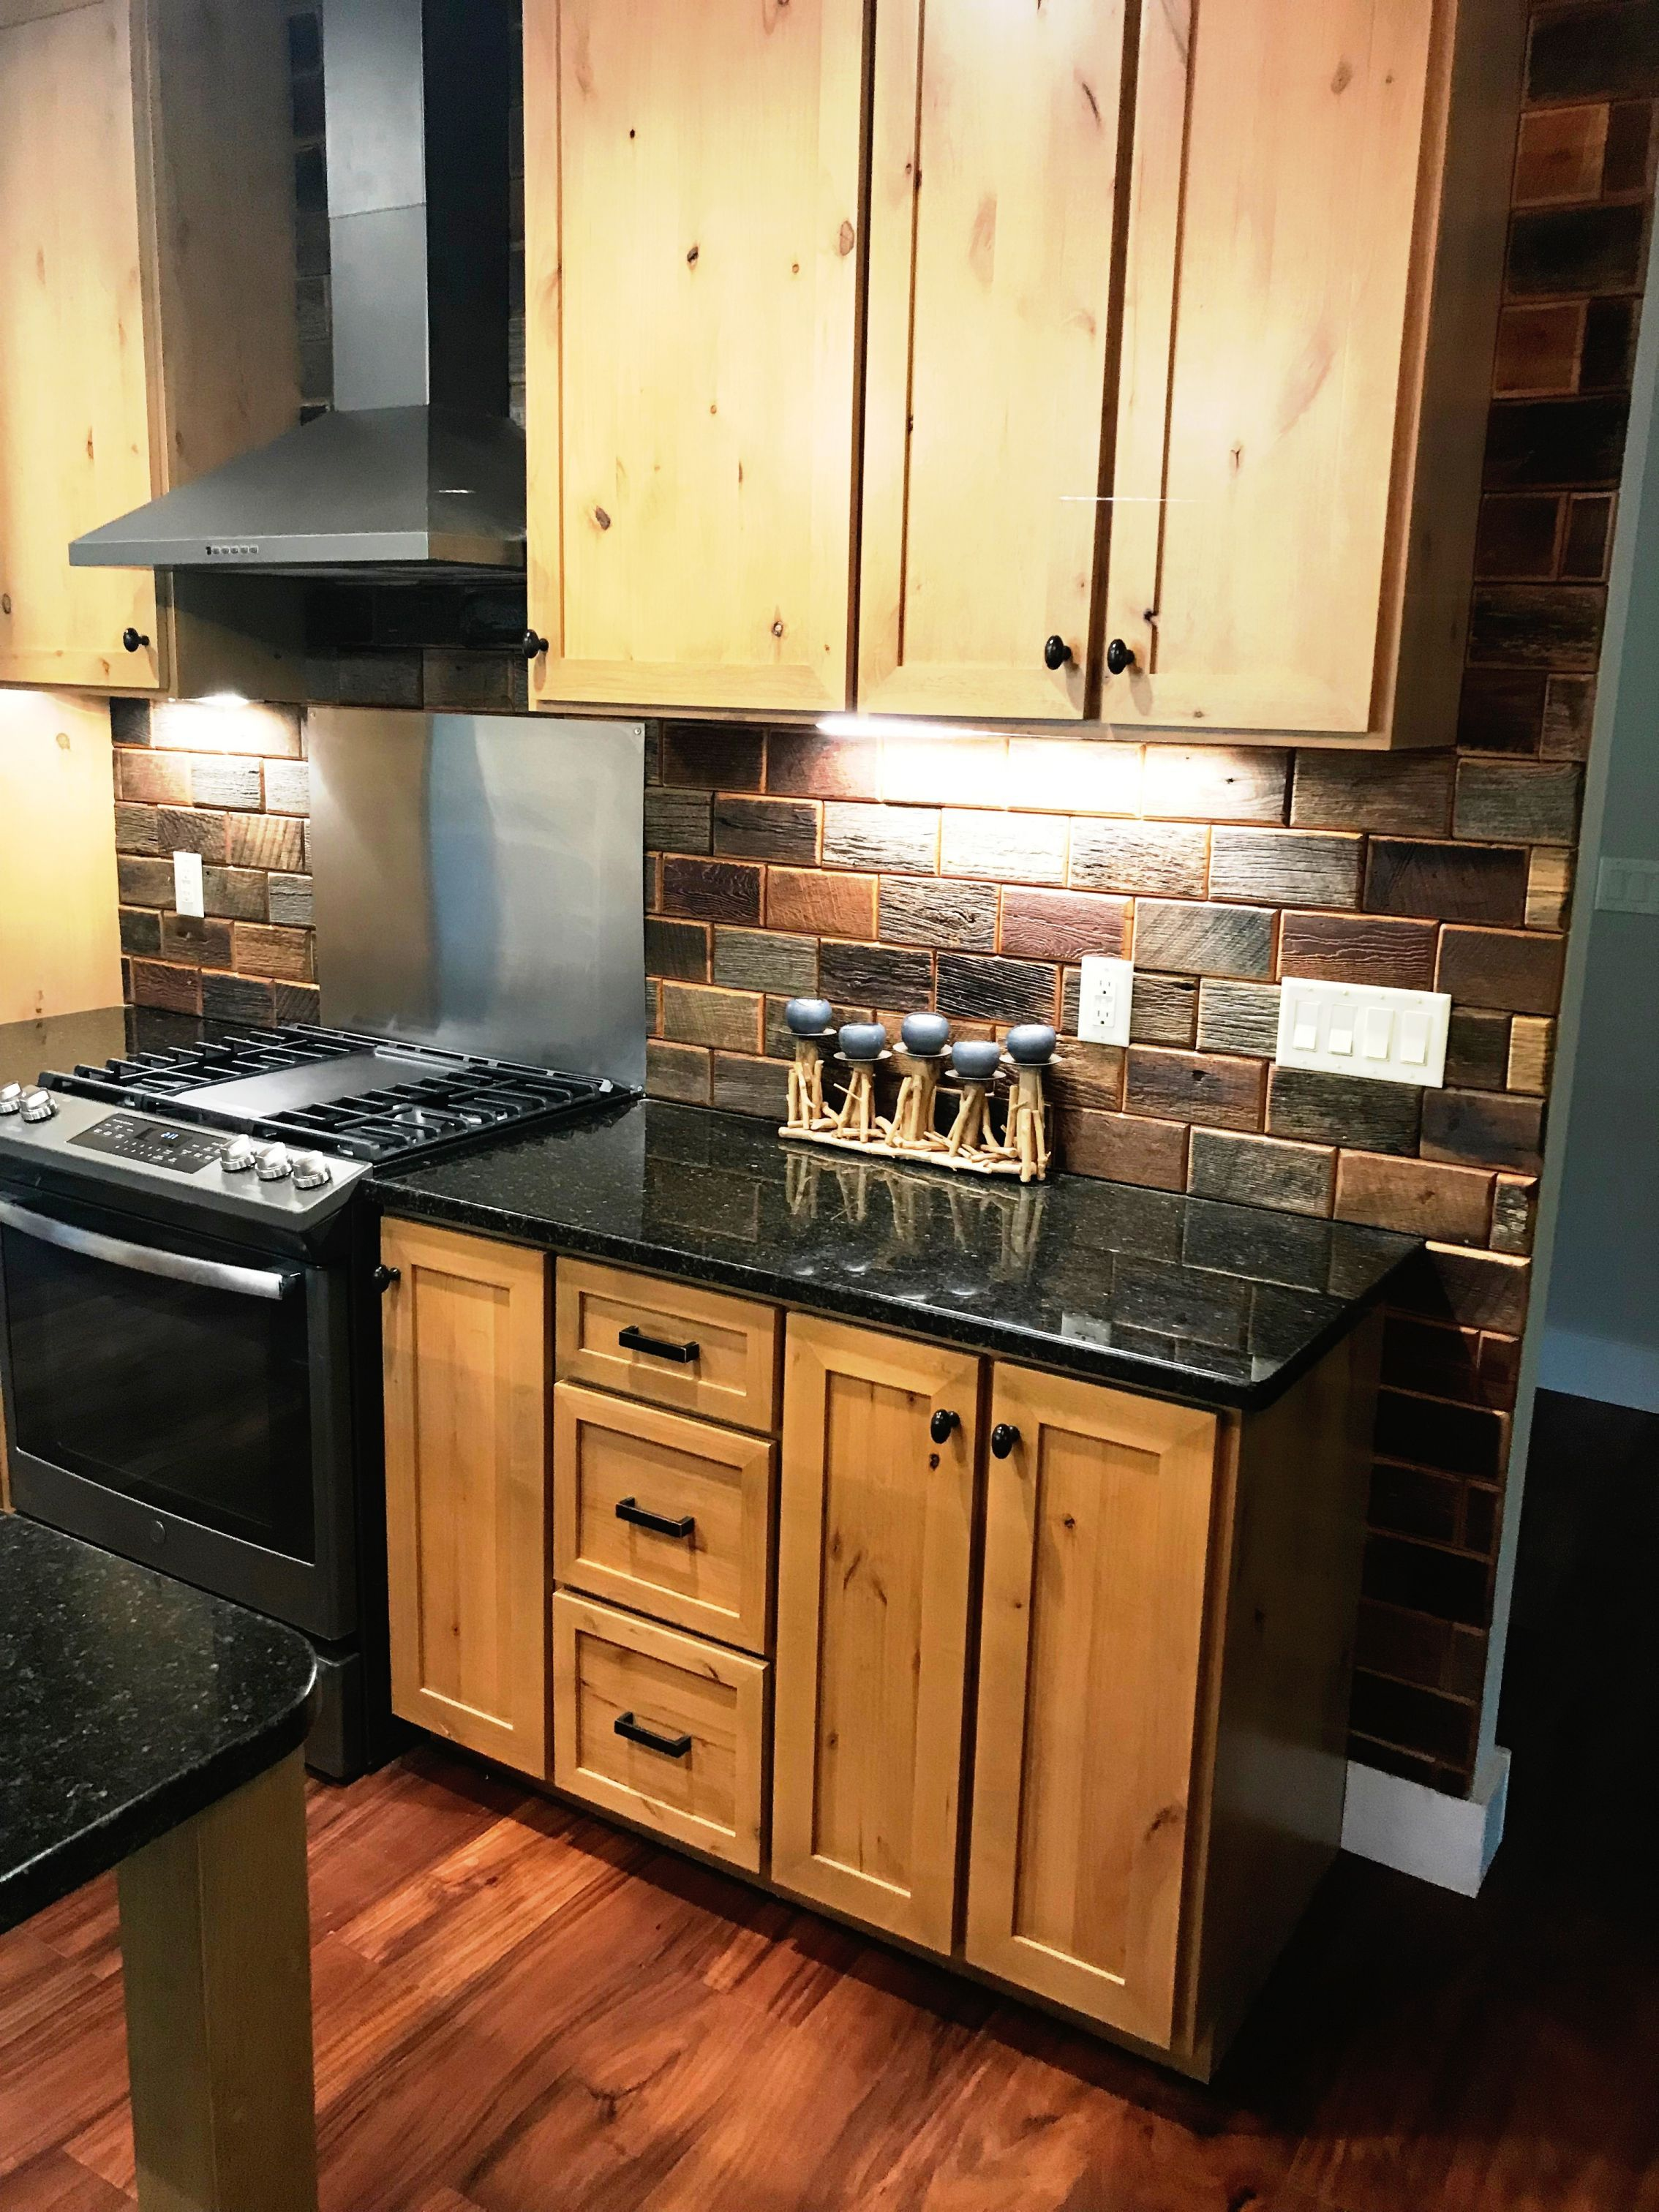 Gorgeous Rustic Reclaimed Barn Wood Back Splash For Sale Now In The Link Kitchenfaucetforsale Rustic Kitchen Cabinets Rustic Kitchen Rustic Kitchen Design